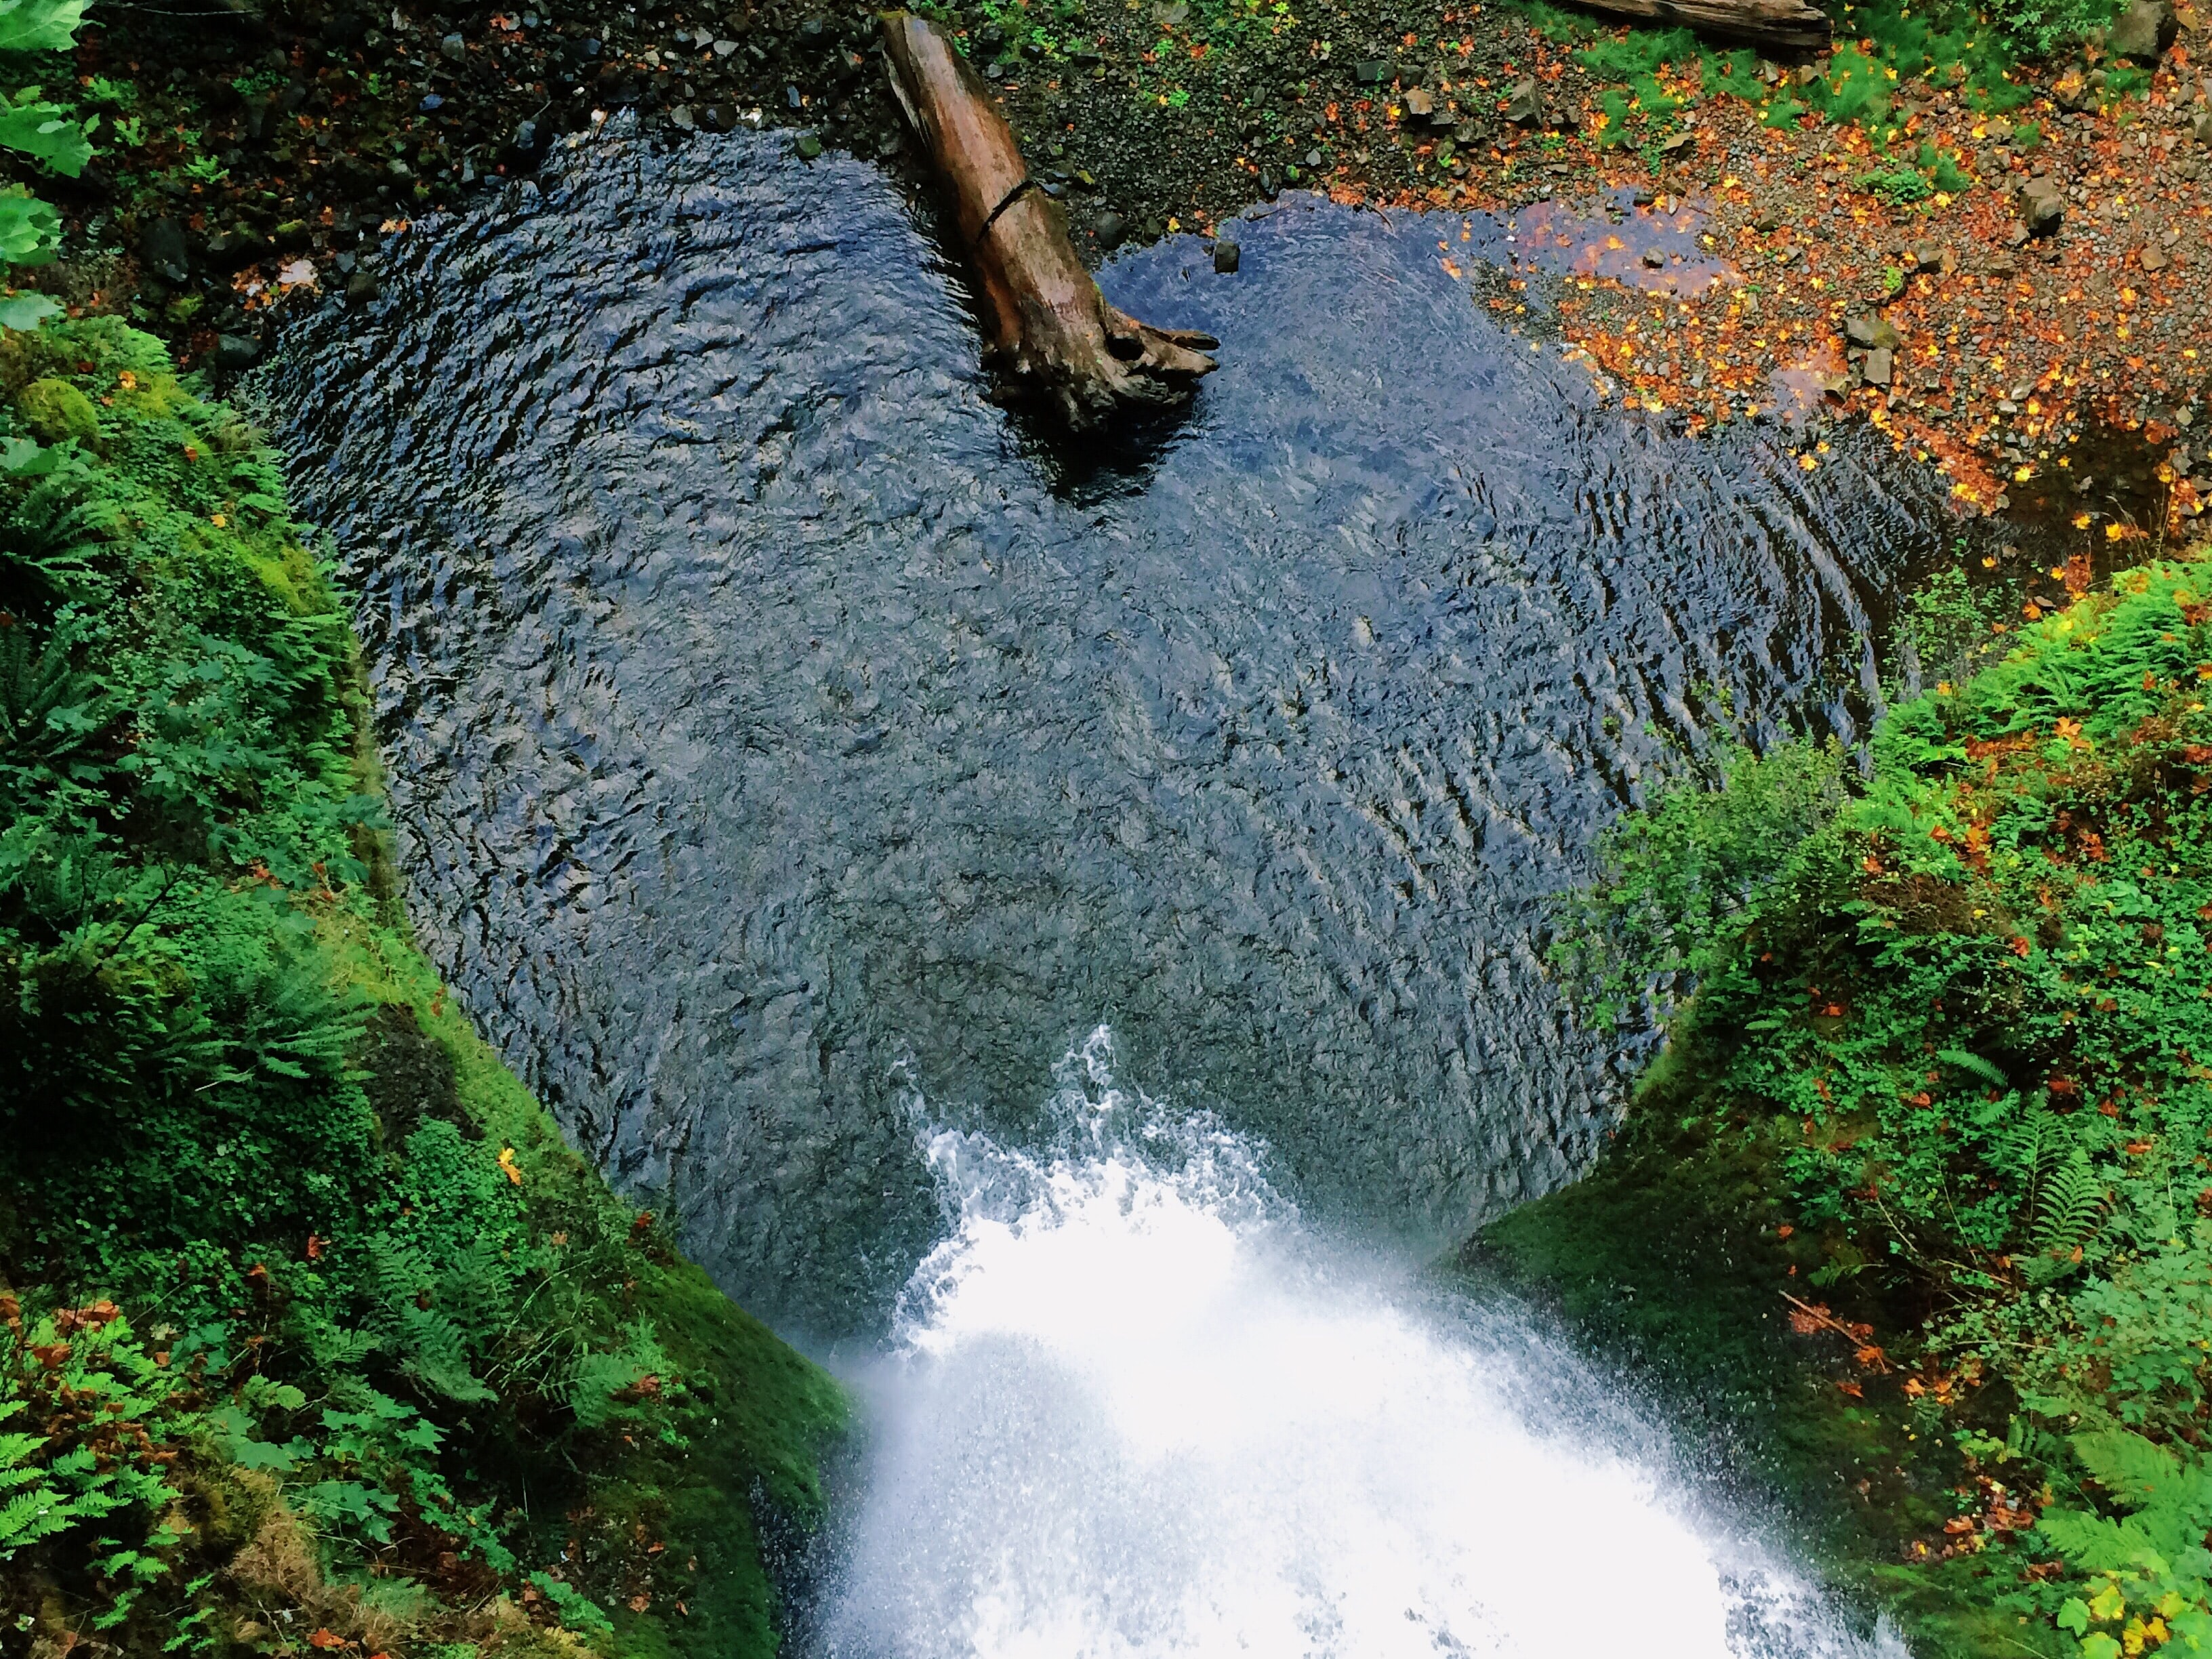 A top view of a waterfall tumbling down into a heart-shaped pond